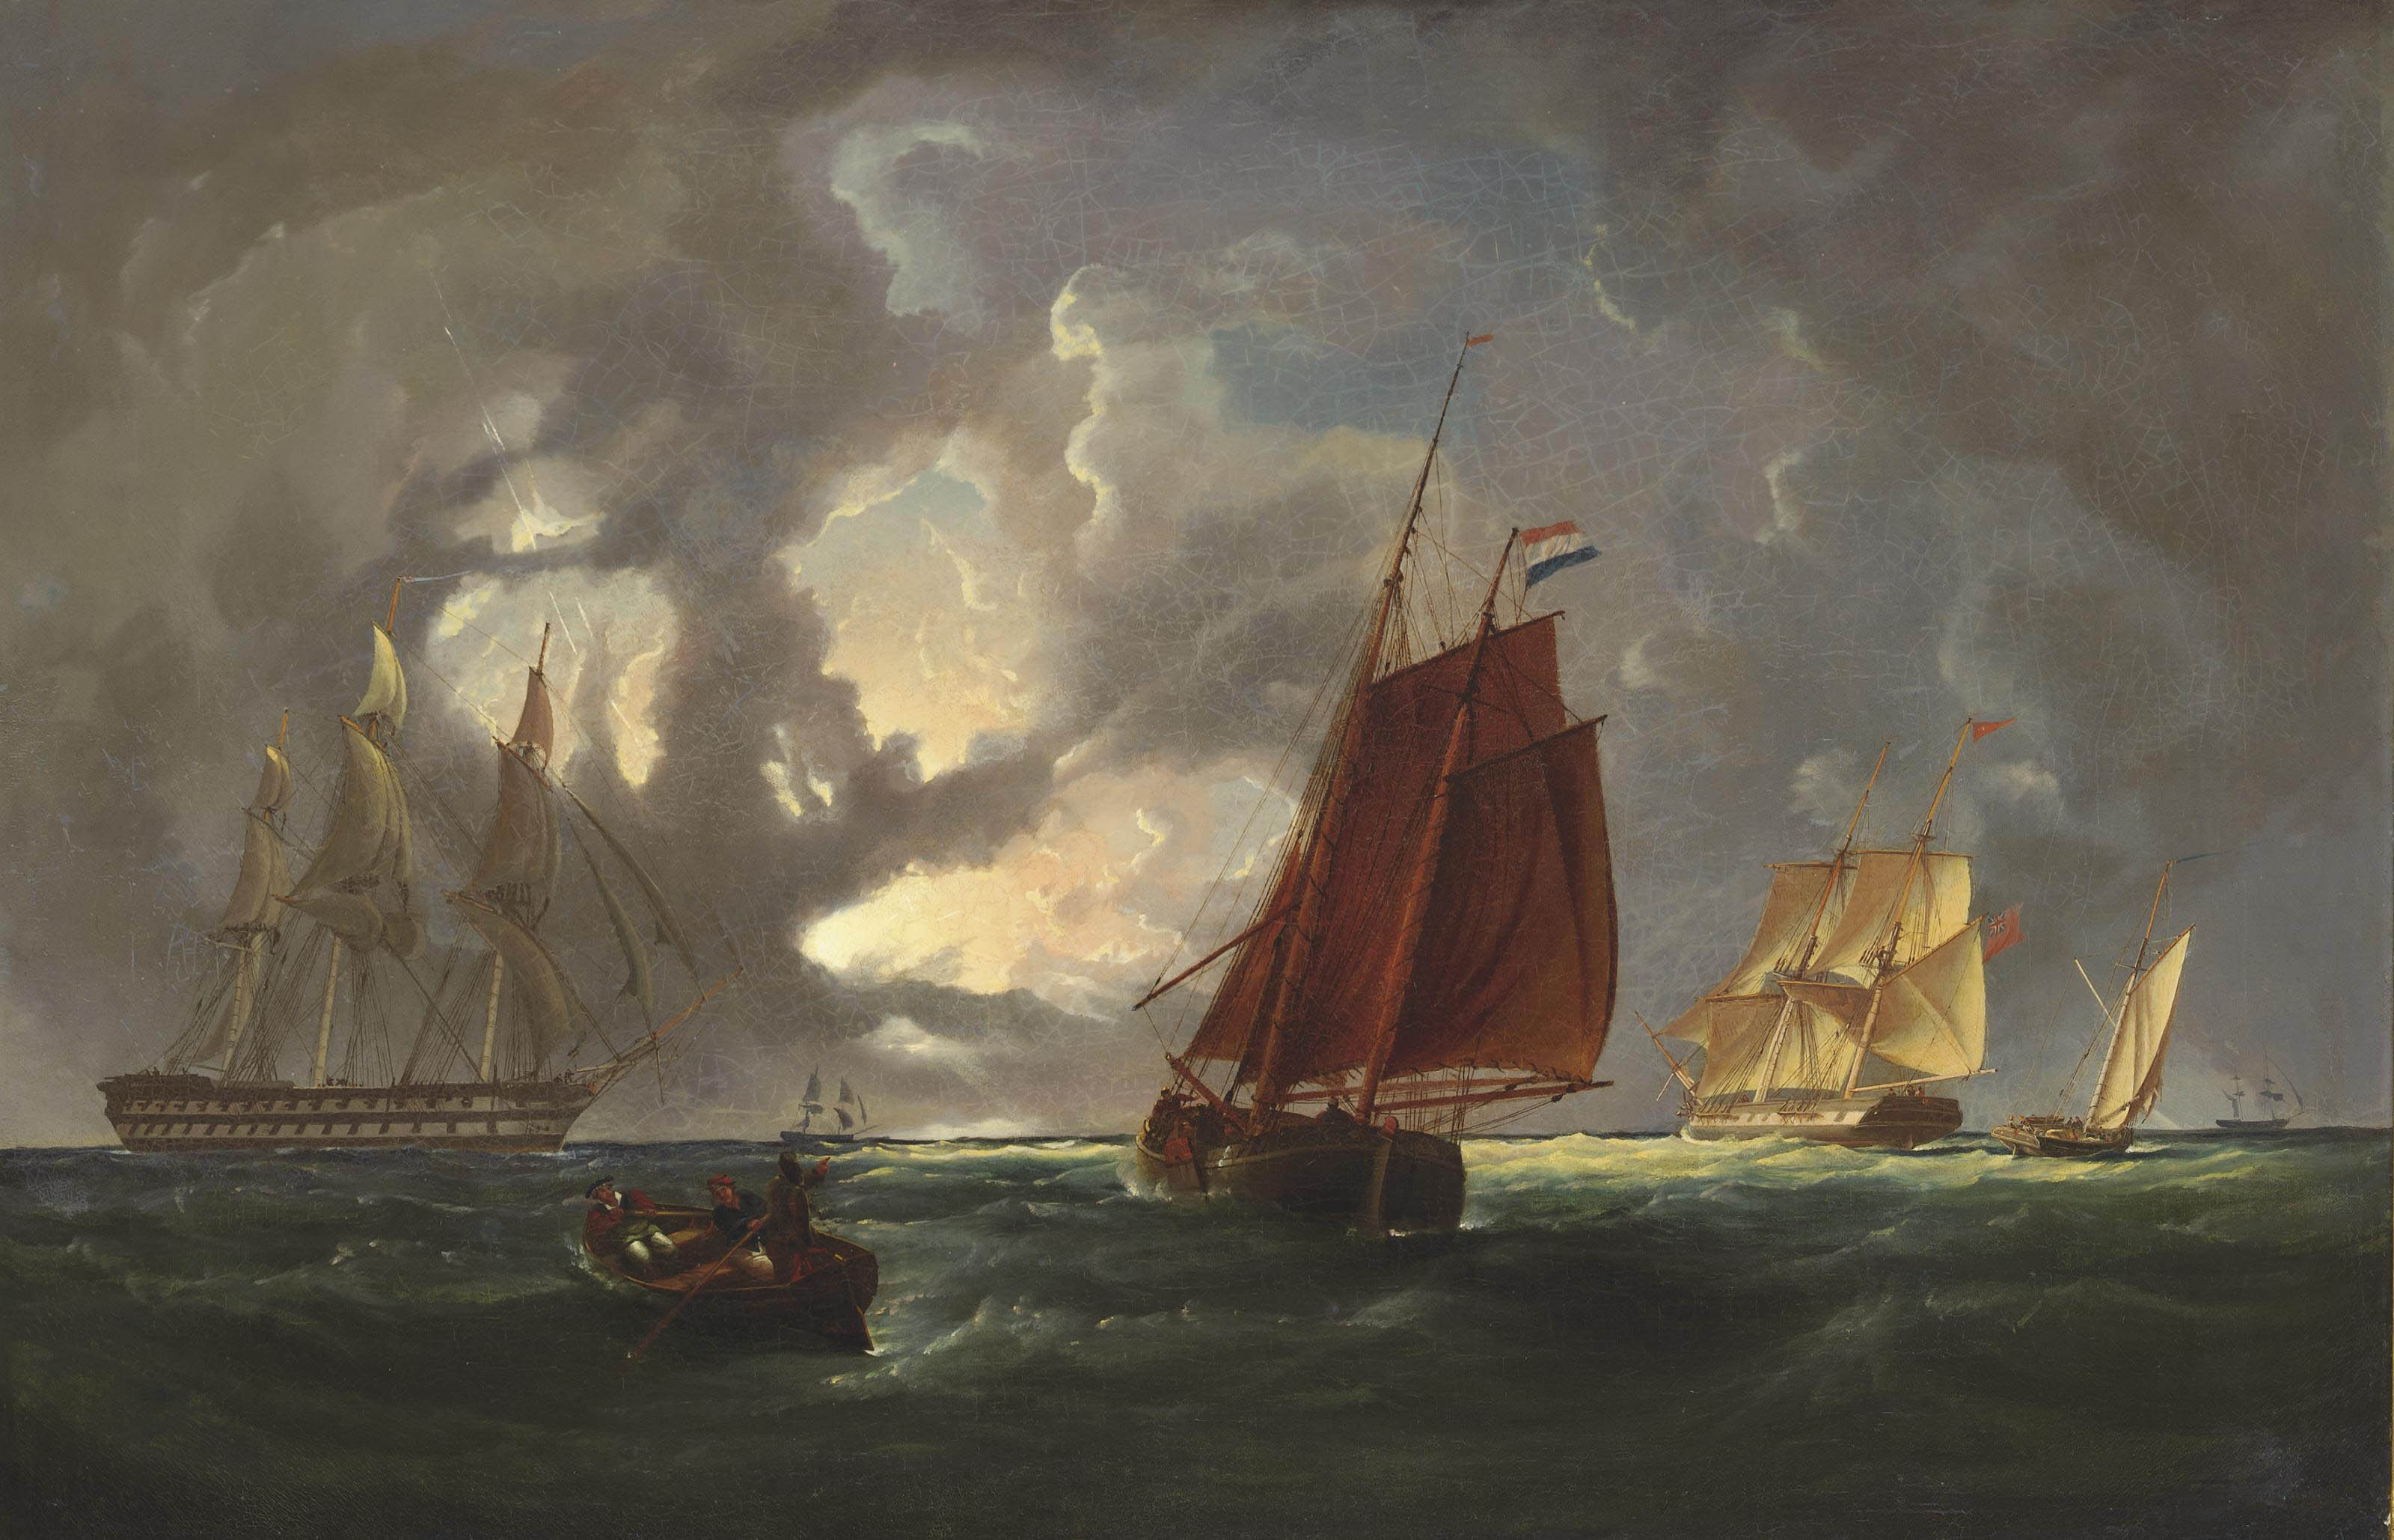 Warships and other shipping in a thunderstorm